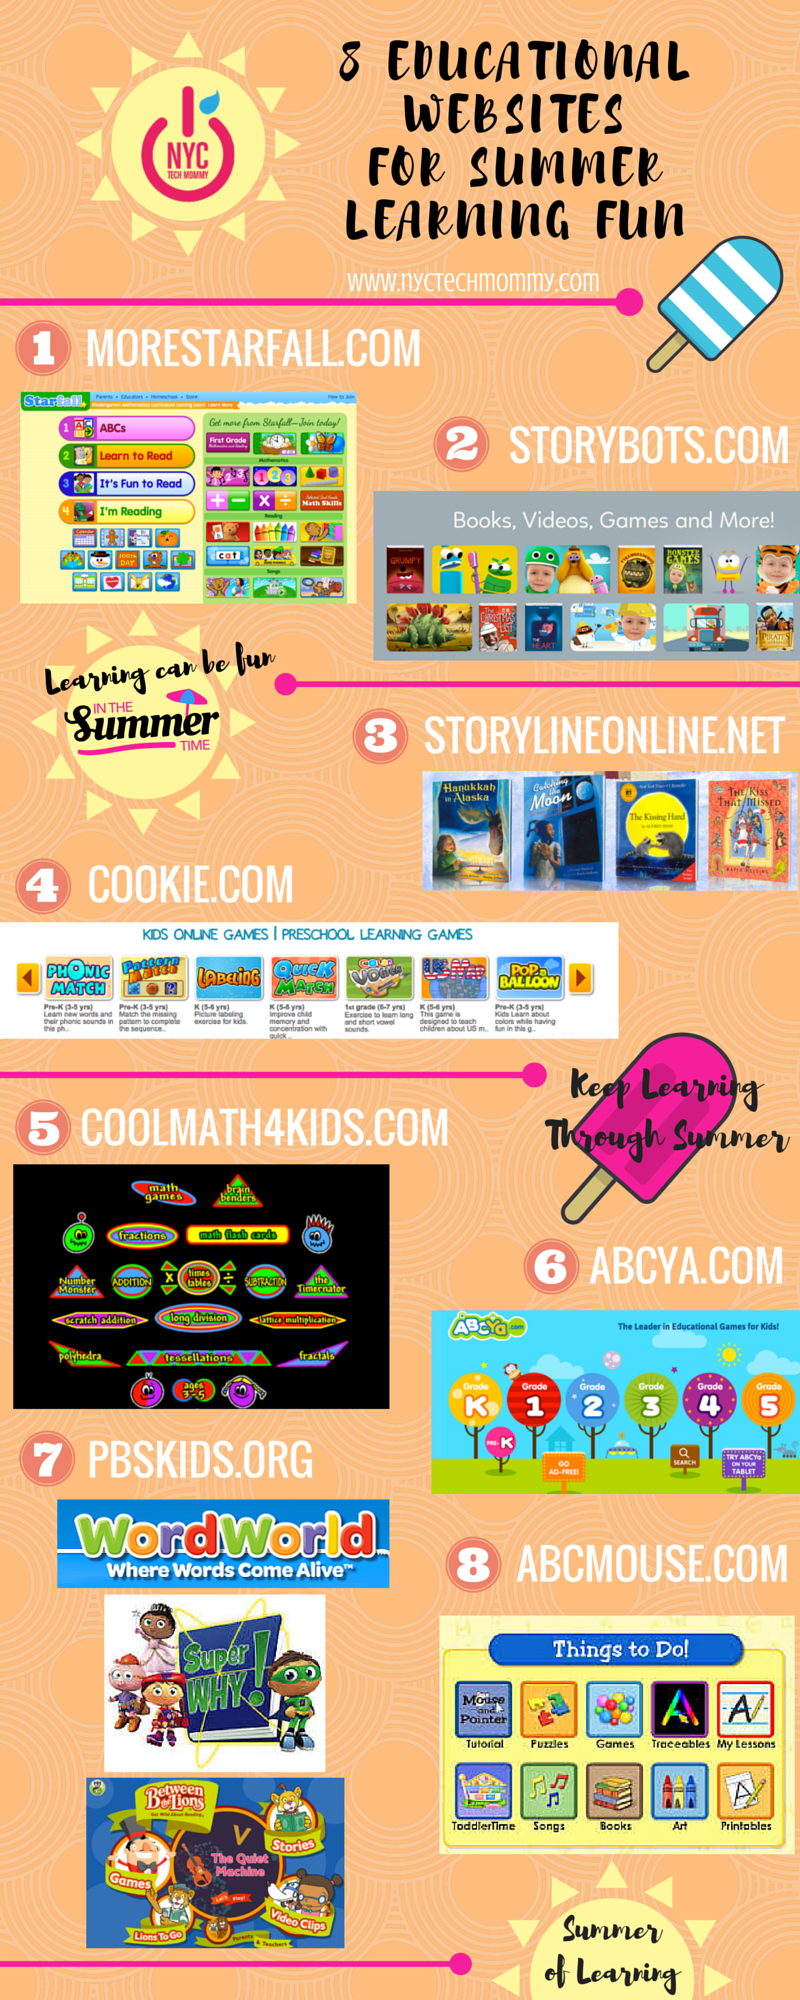 8 Educational Websites for Summer Learning FUN - NYC Tech Mommy